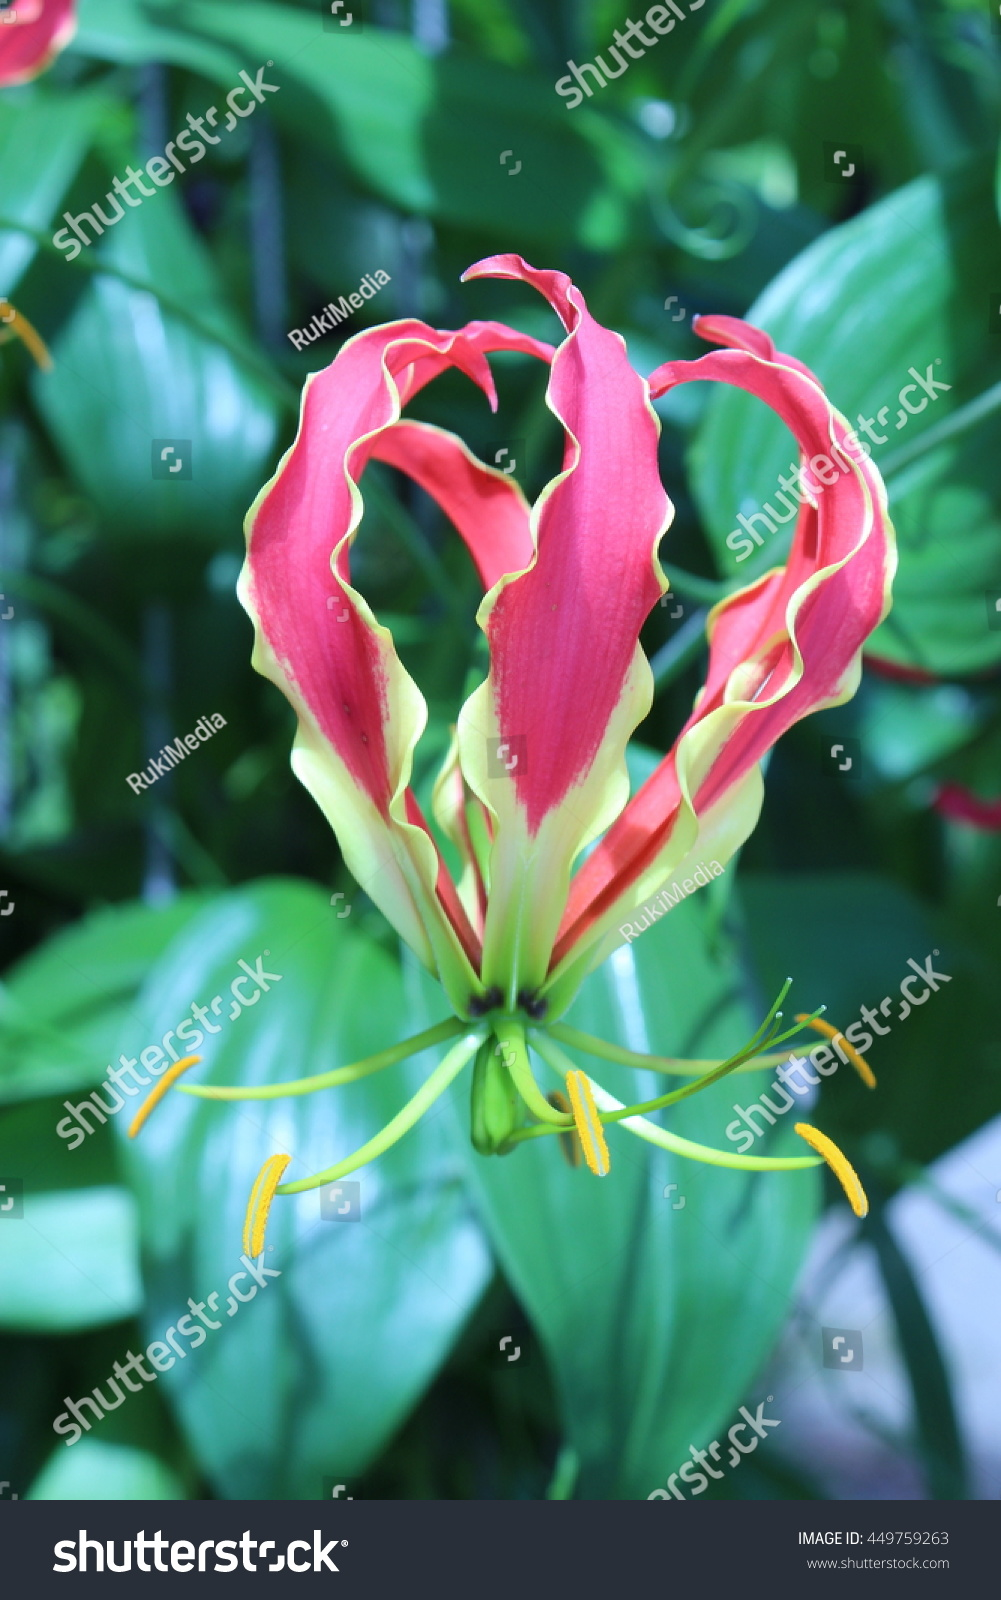 Red yellow flame lily flower or stock photo edit now 449759263 red and yellow flame lily flower or climbing lily creeping lily izmirmasajfo